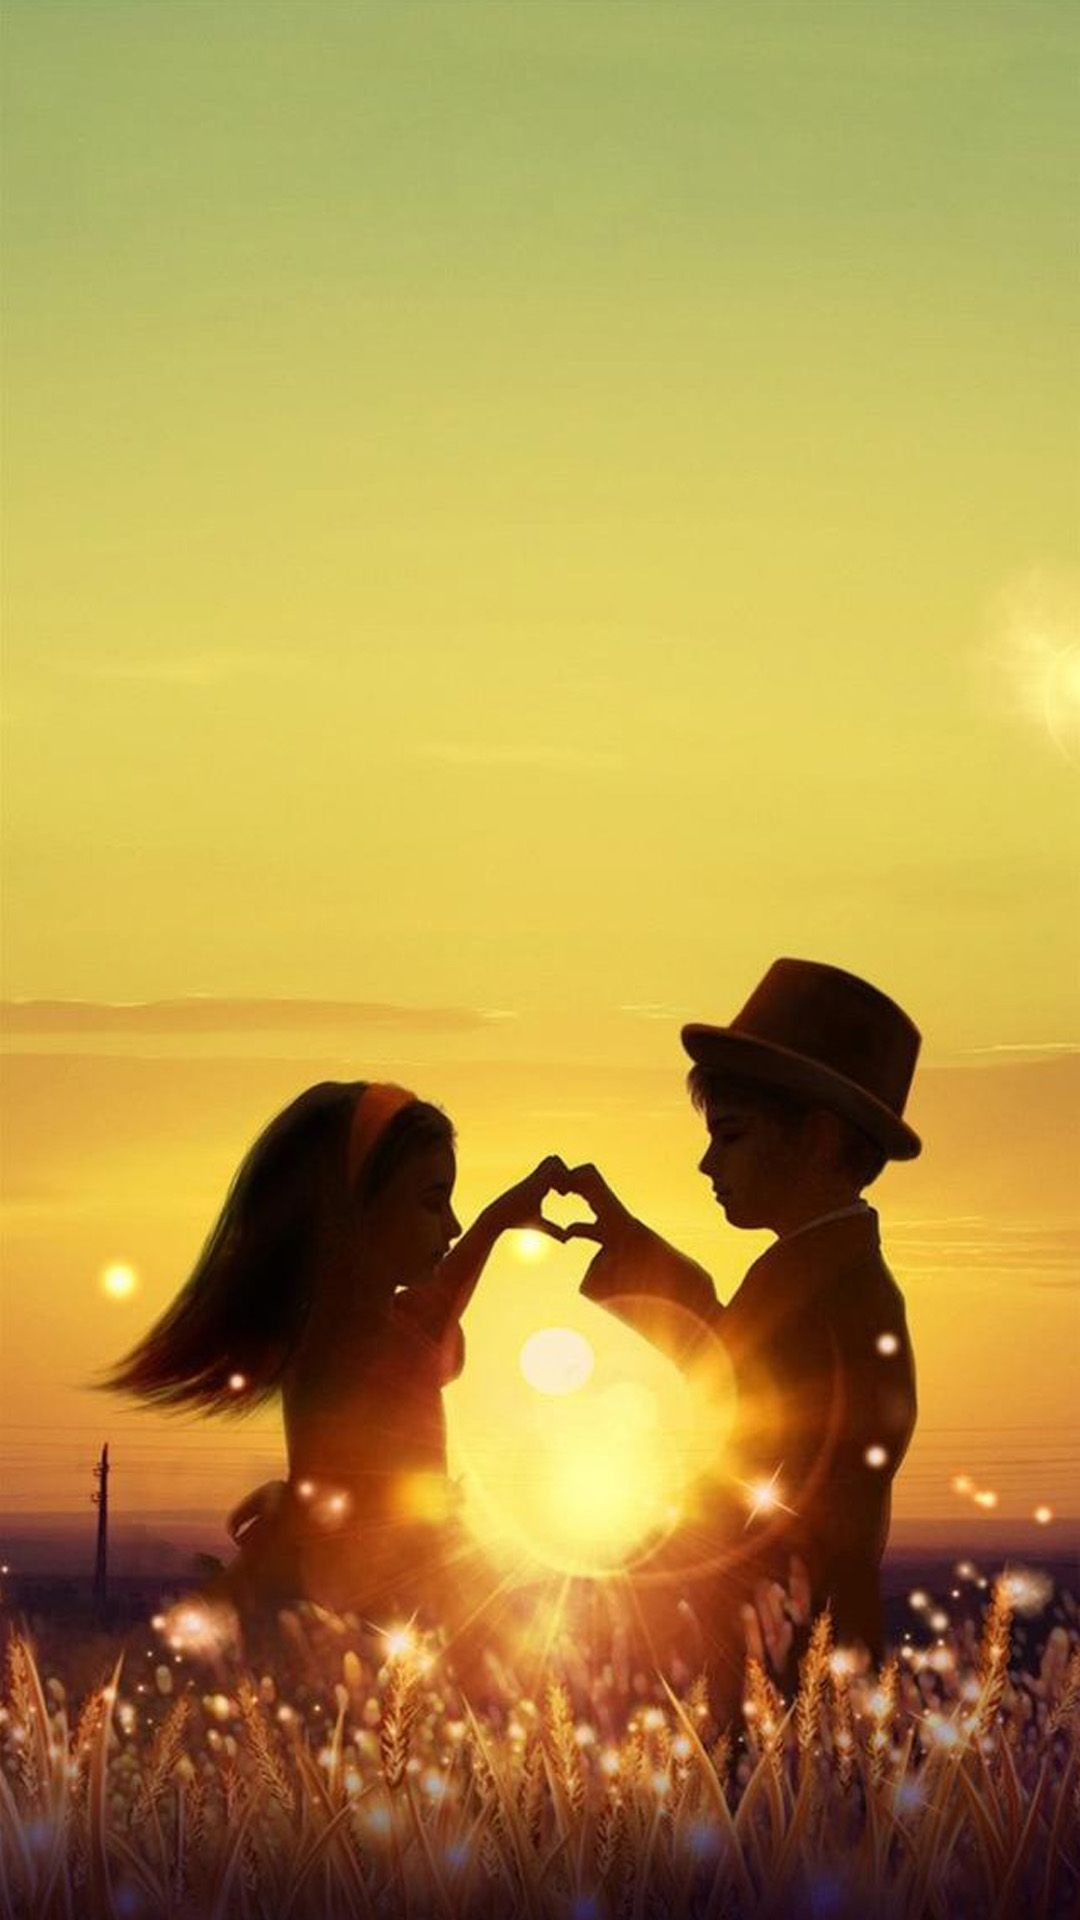 Sunset Love Cute Kids Couple Sunlight Flowers Field Field Sunset Dandelions Cute Dusk Ki In 2020 Cute Couple Wallpaper Love Couple Wallpaper Cute Love Wallpapers